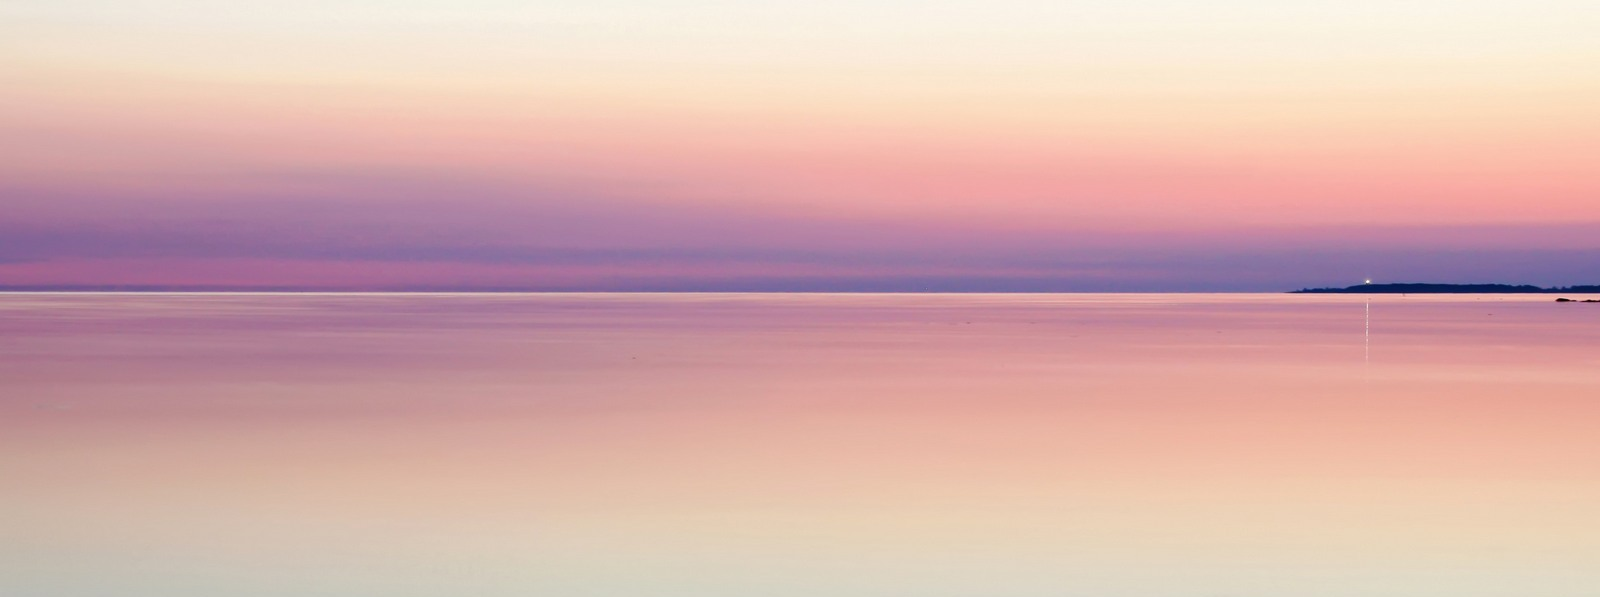 Sunset calm water